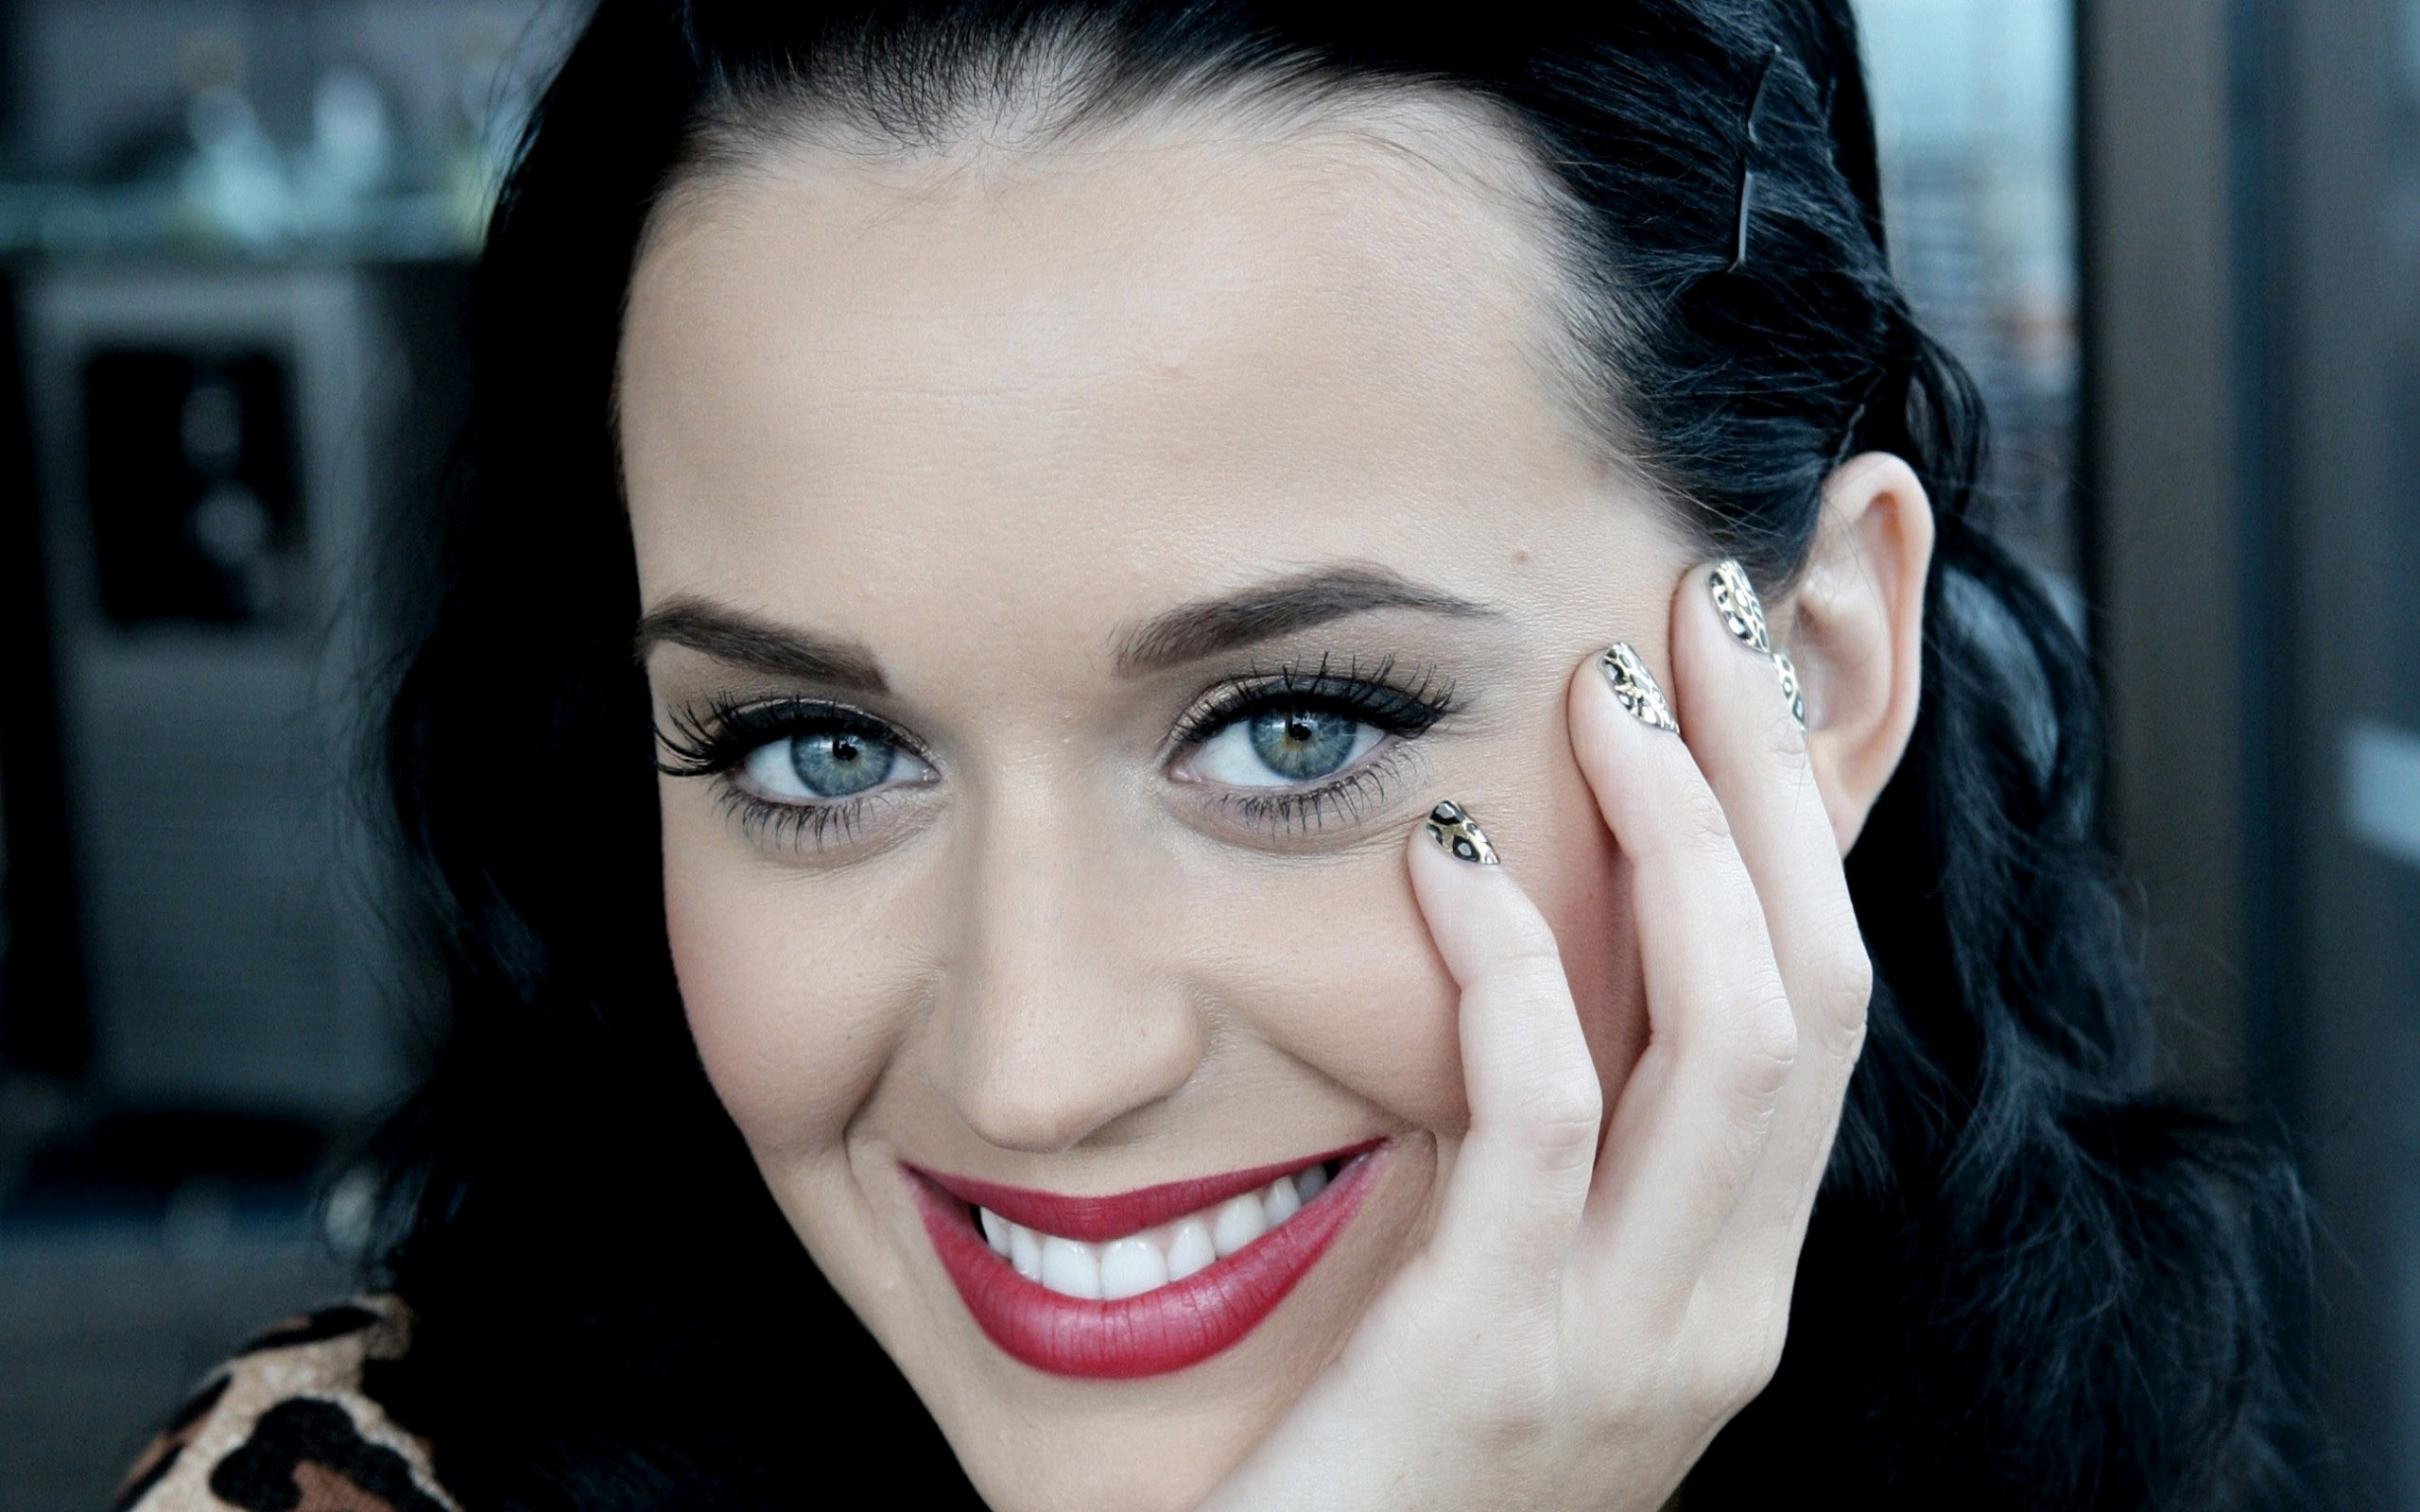 Katy Perry Smiling Nude Pic nude (13 photo), Leaked Celebrity pics